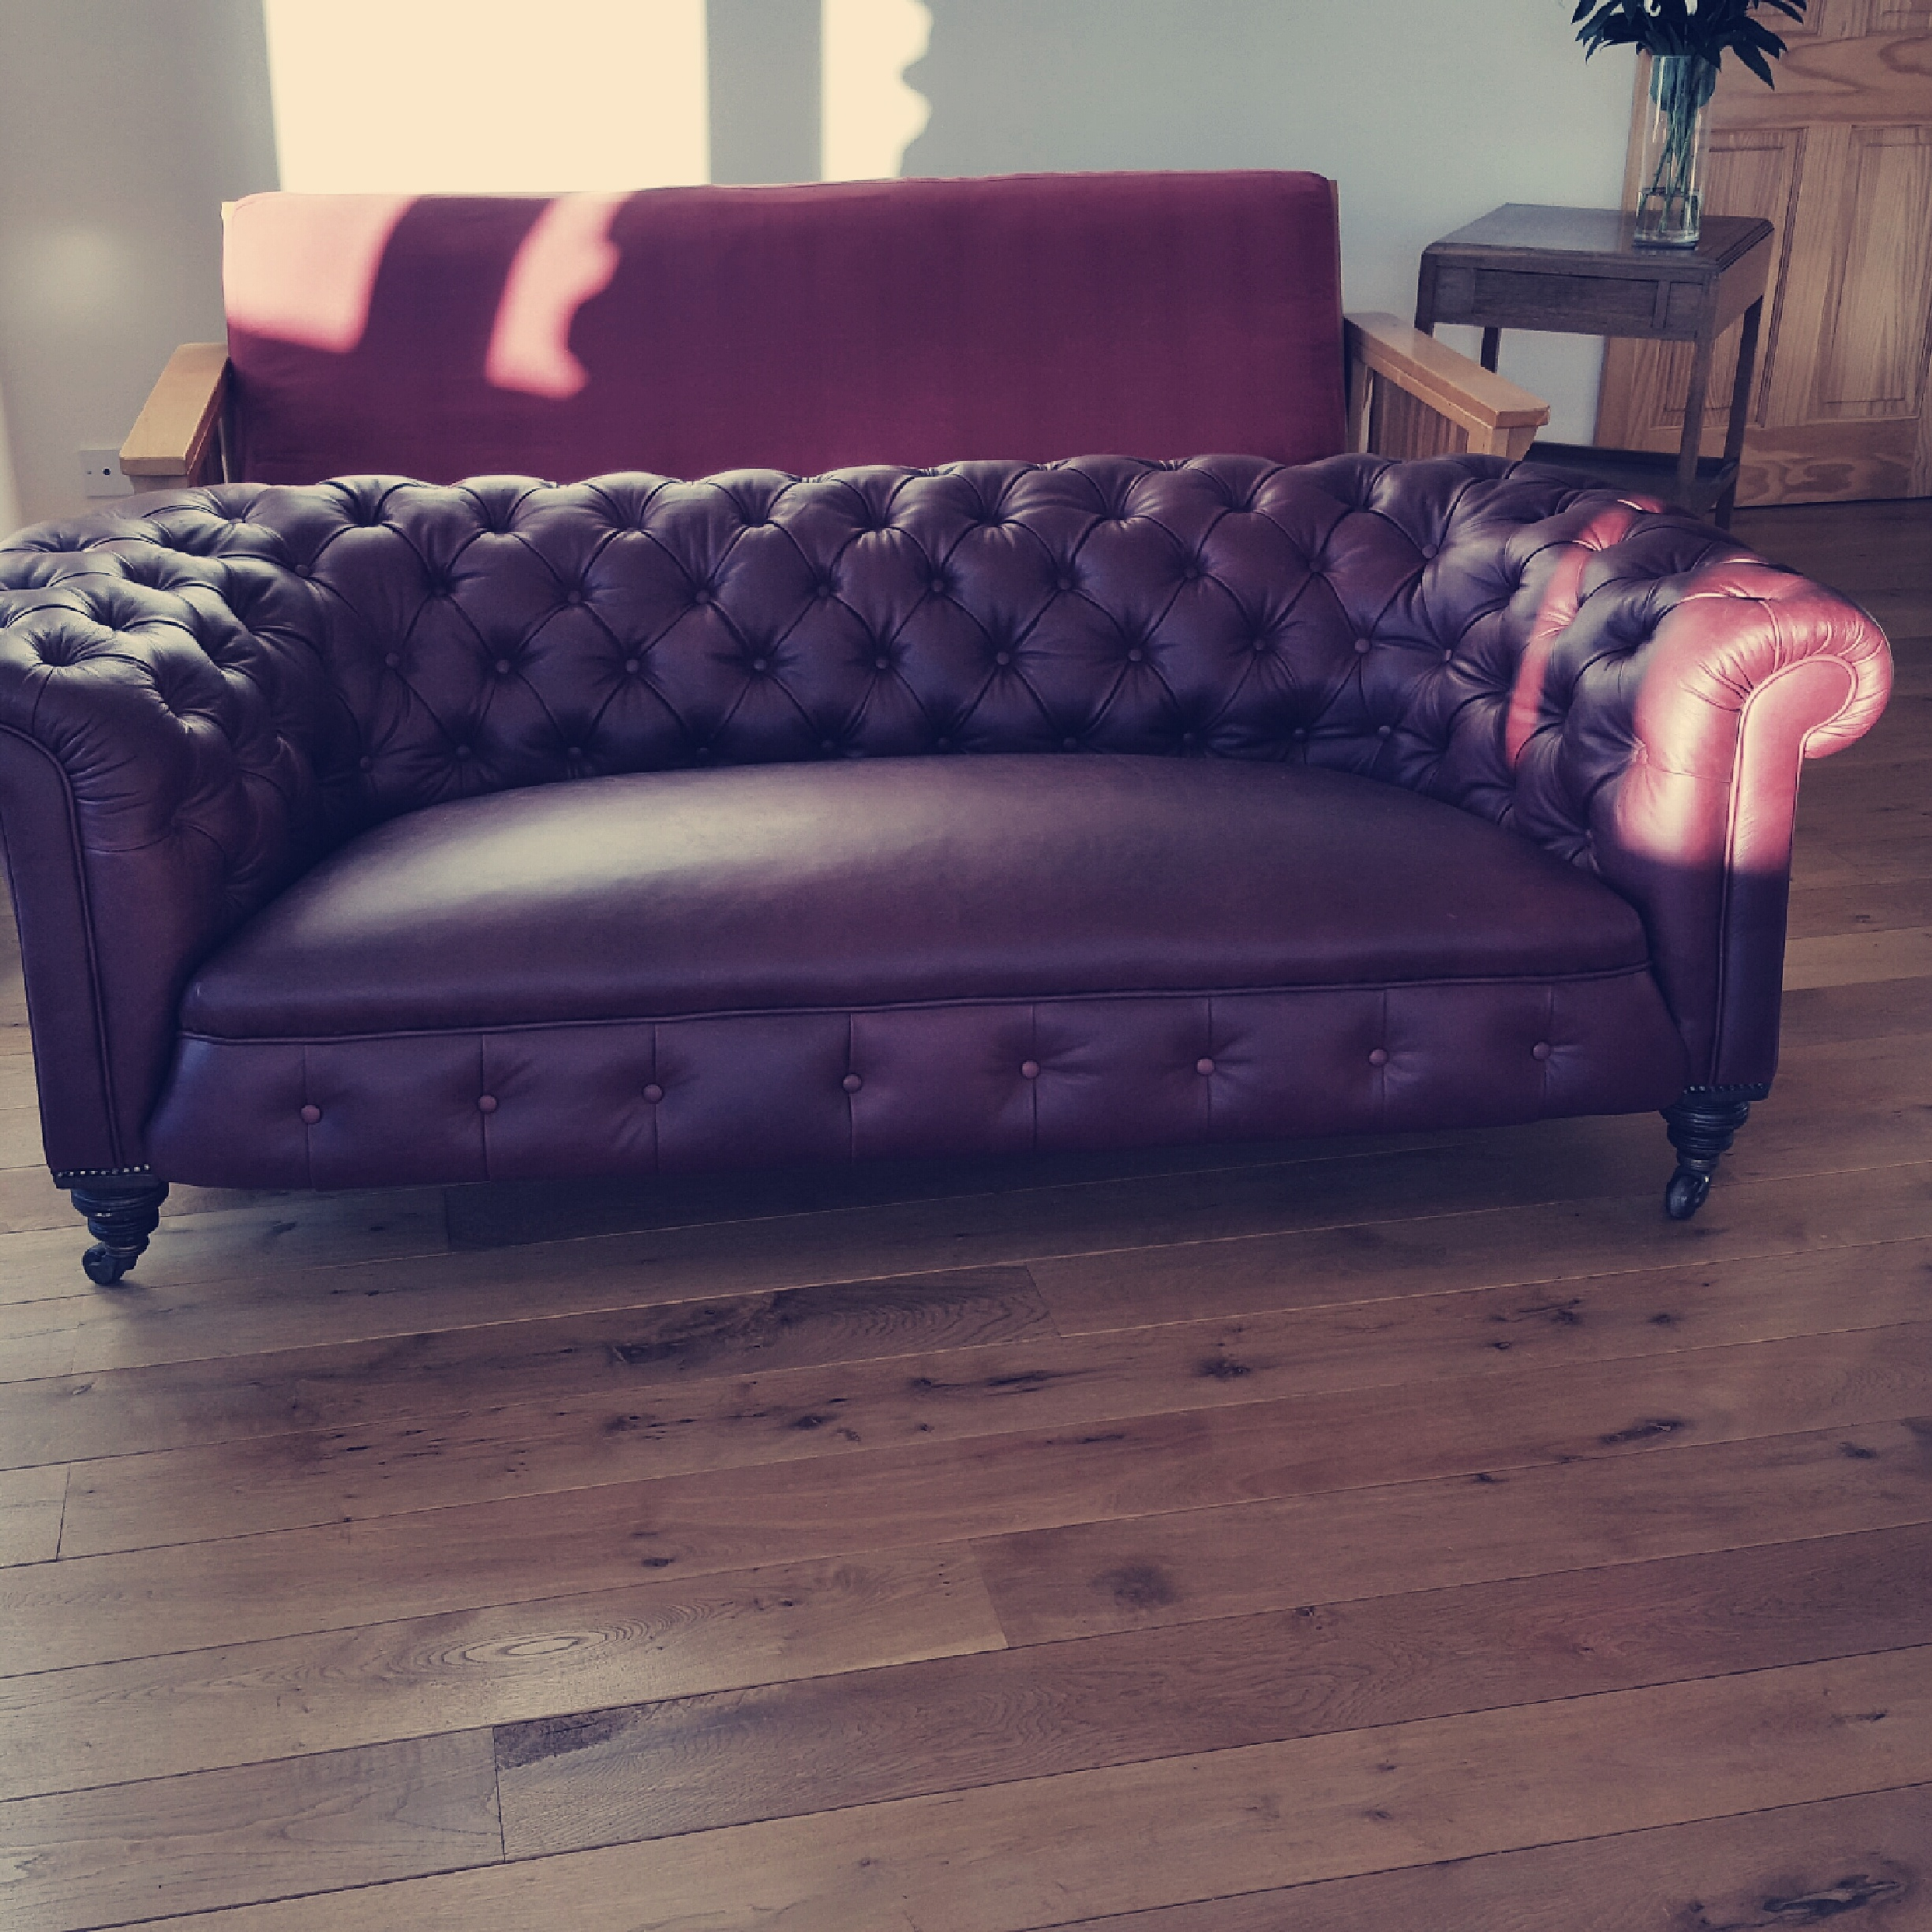 Peachy Chesterfield Sofa Raymond Mackenzie Upholstery Squirreltailoven Fun Painted Chair Ideas Images Squirreltailovenorg